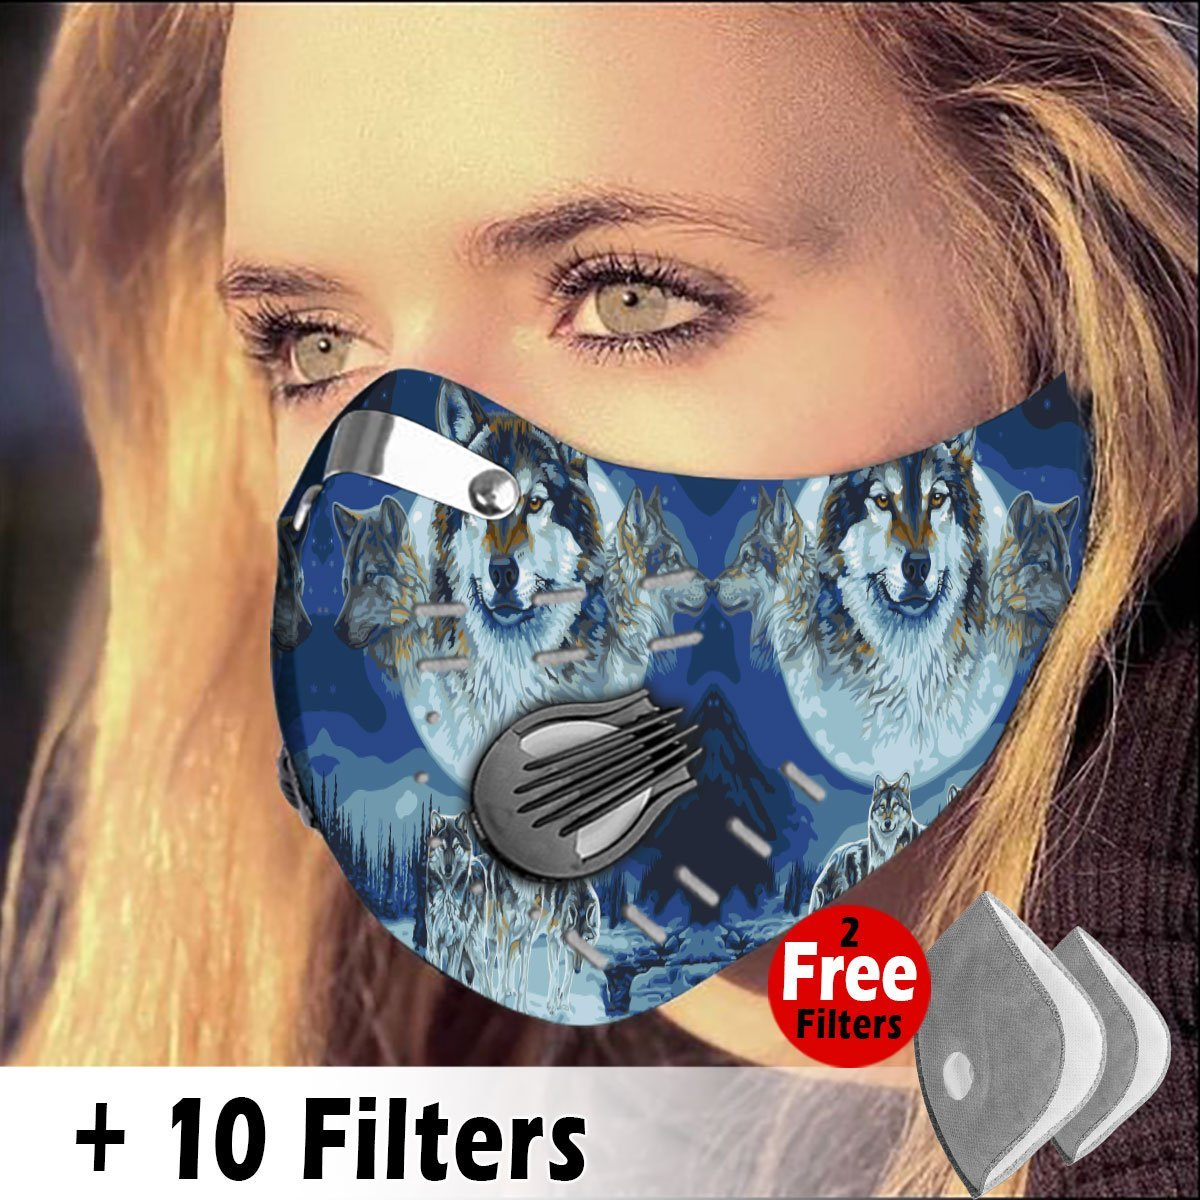 Activated Carbon Filter PM2.5 - Native Mask 03